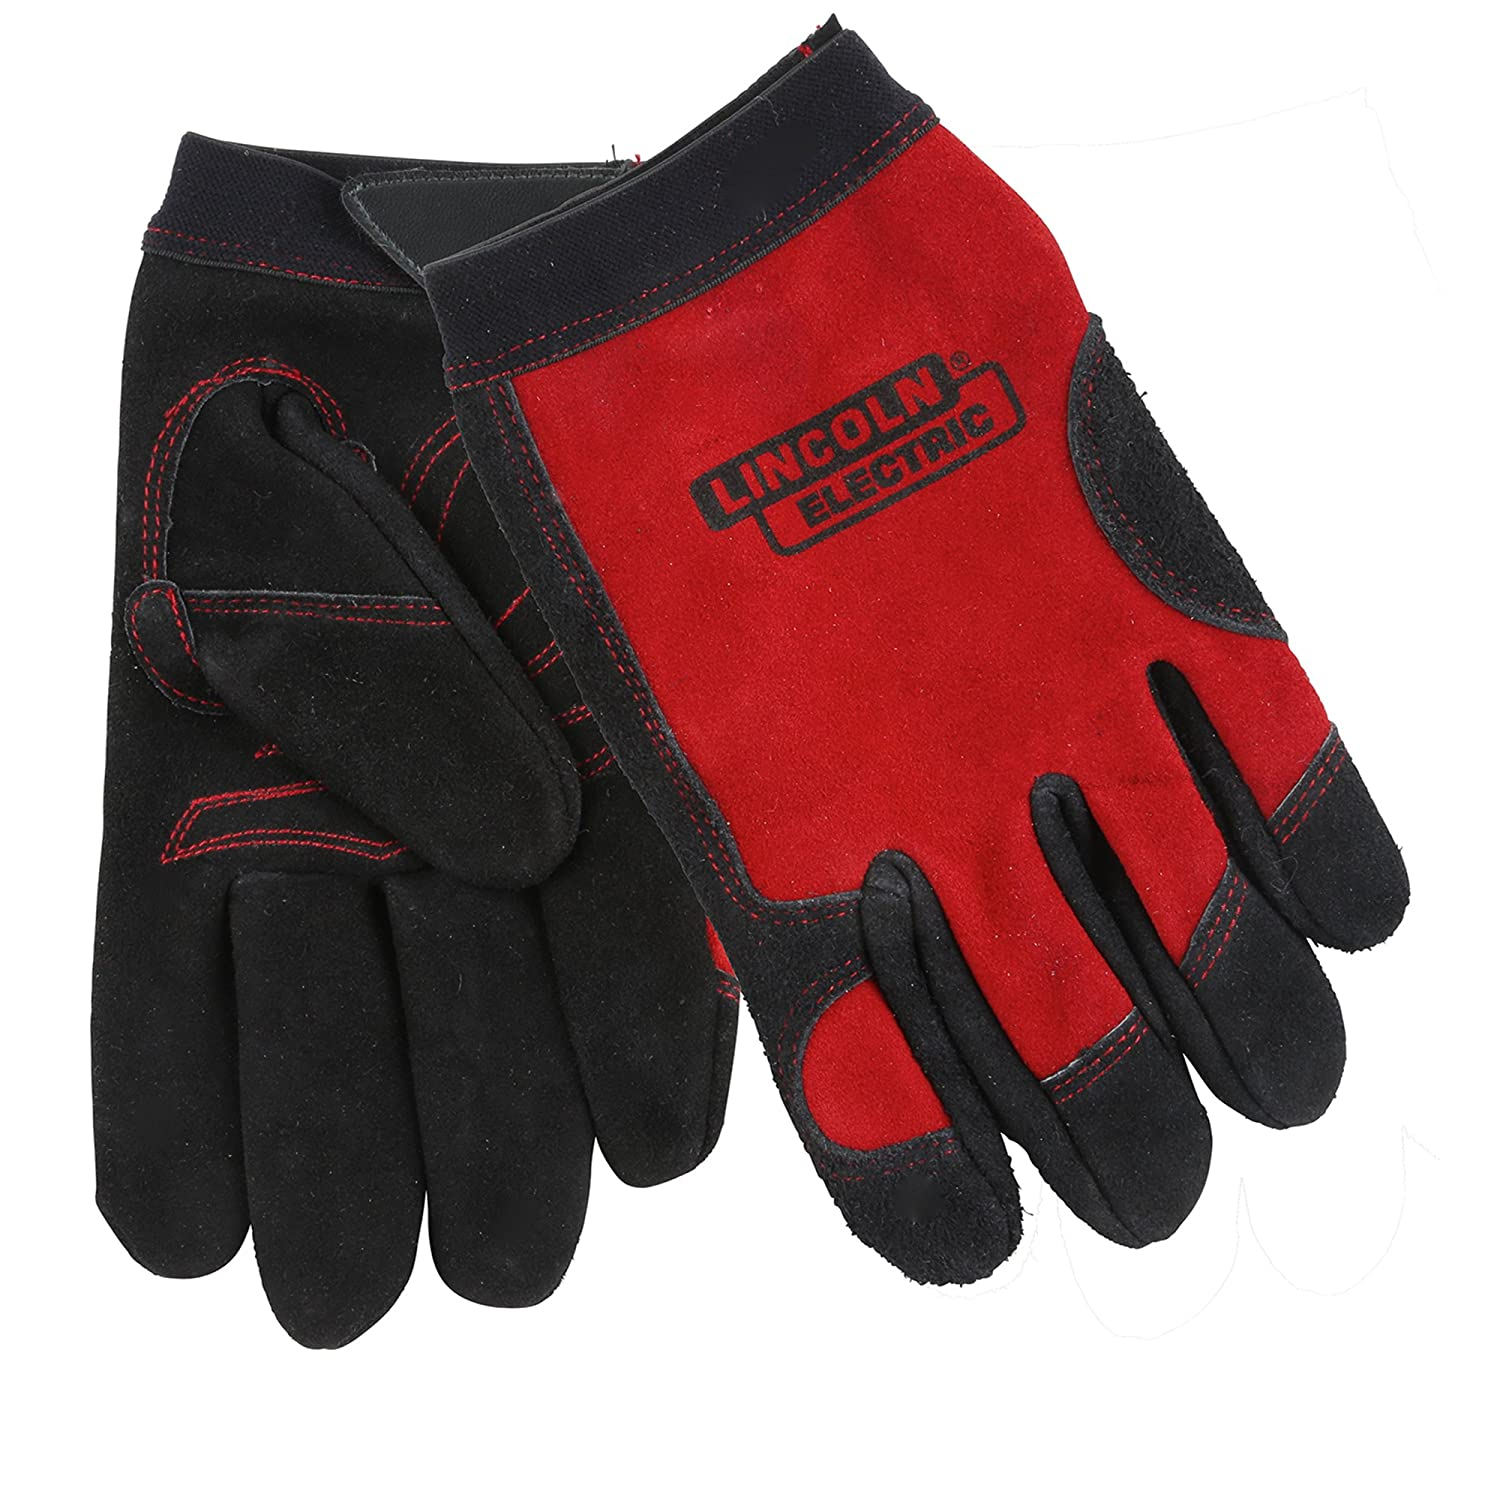 Lincoln Electric KH799XL Work Gloves, X-Large, Red: Amazon.com: Industrial & Scientific